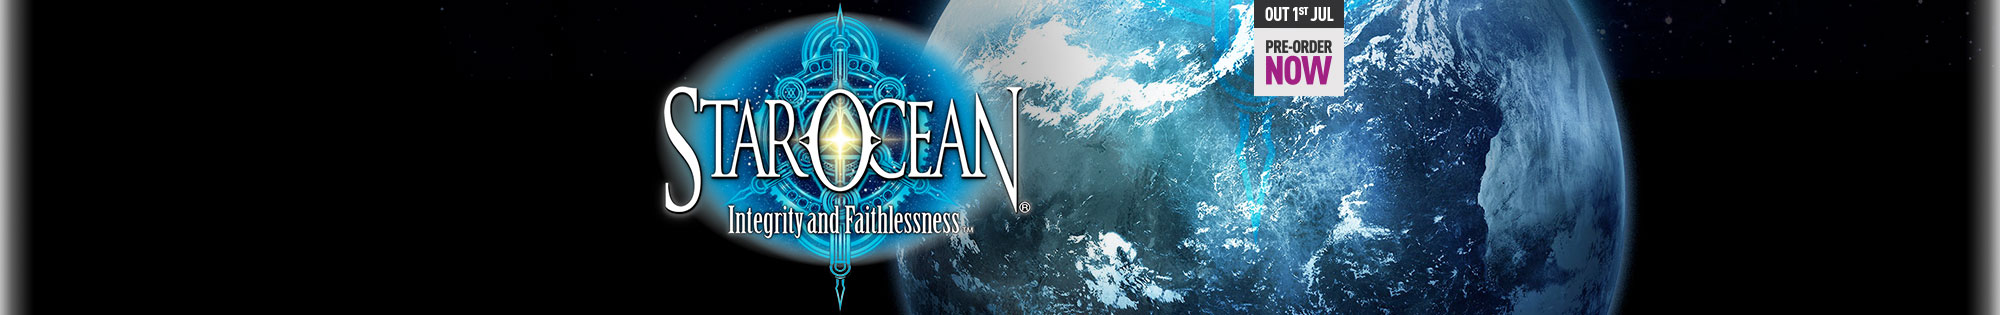 Star Ocean Integrity and Faithlessness on PS4 - Buy Now at GAME.co.uk!